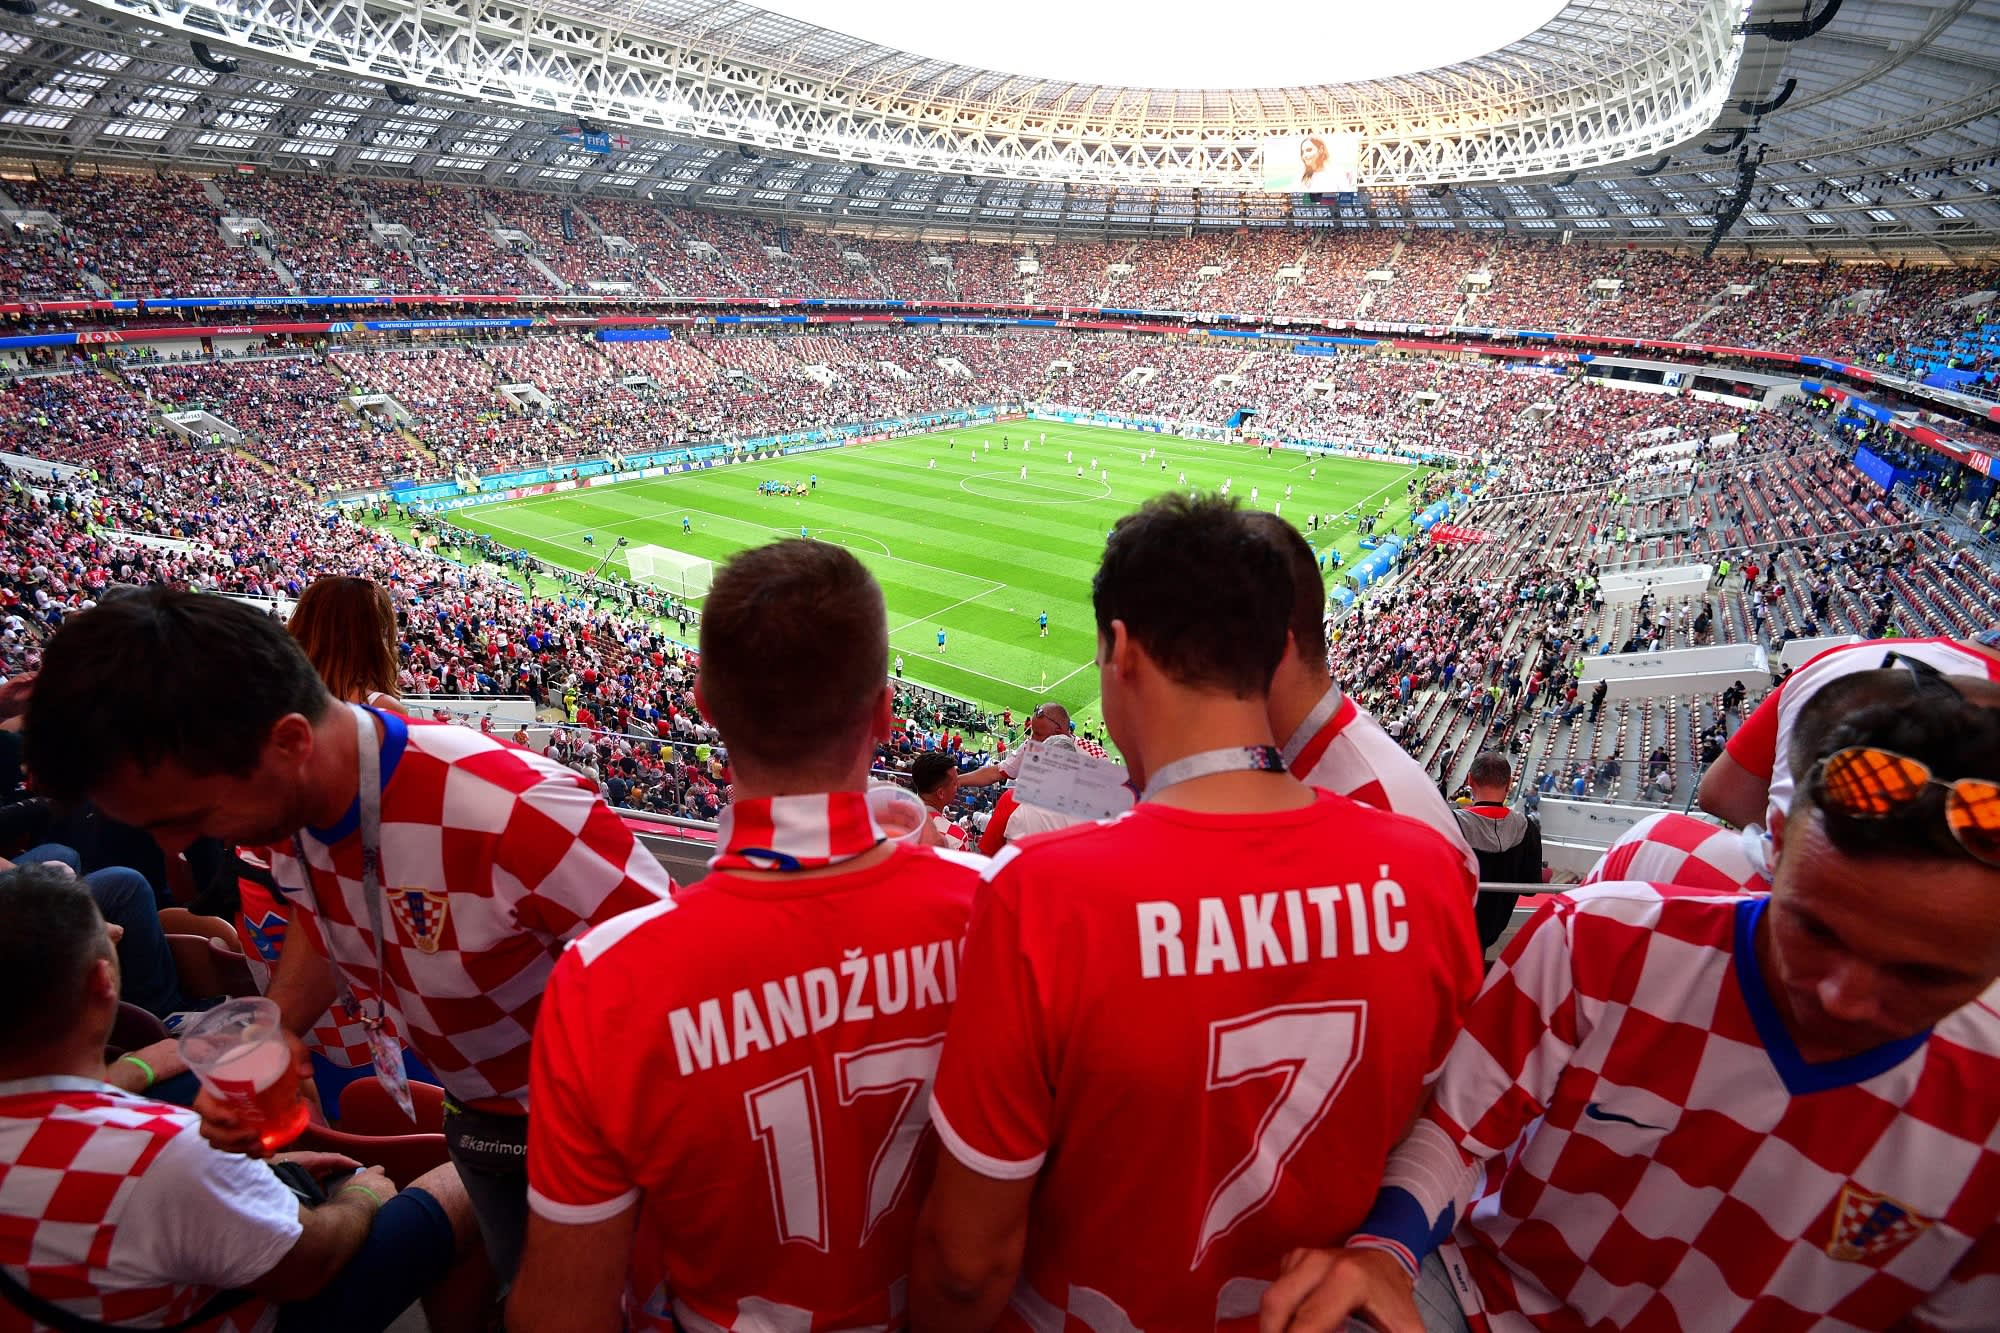 Pics of the world cup final ticket prices